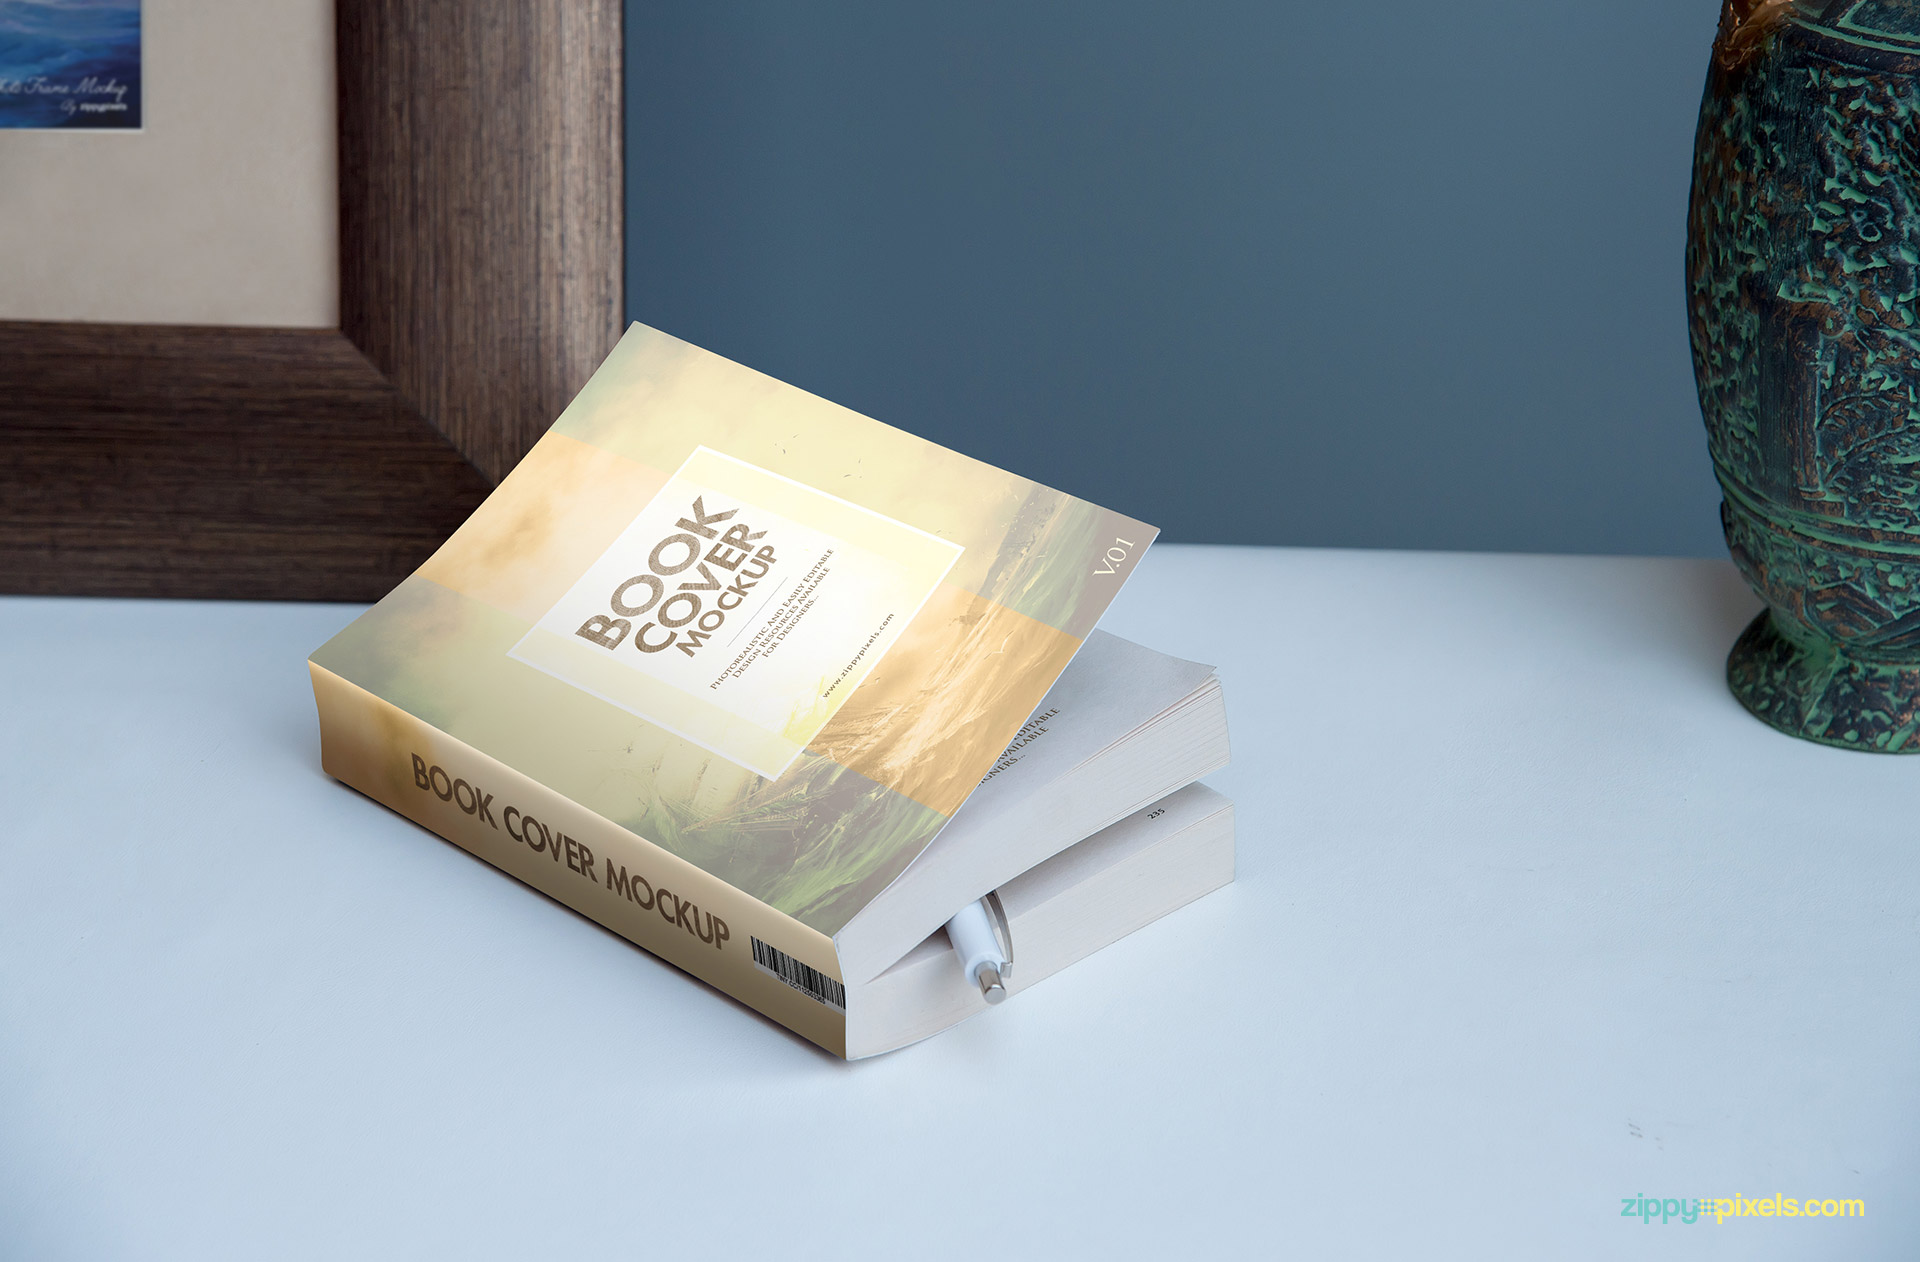 Softcover Novel mockup showing a book lying down with pen inside it